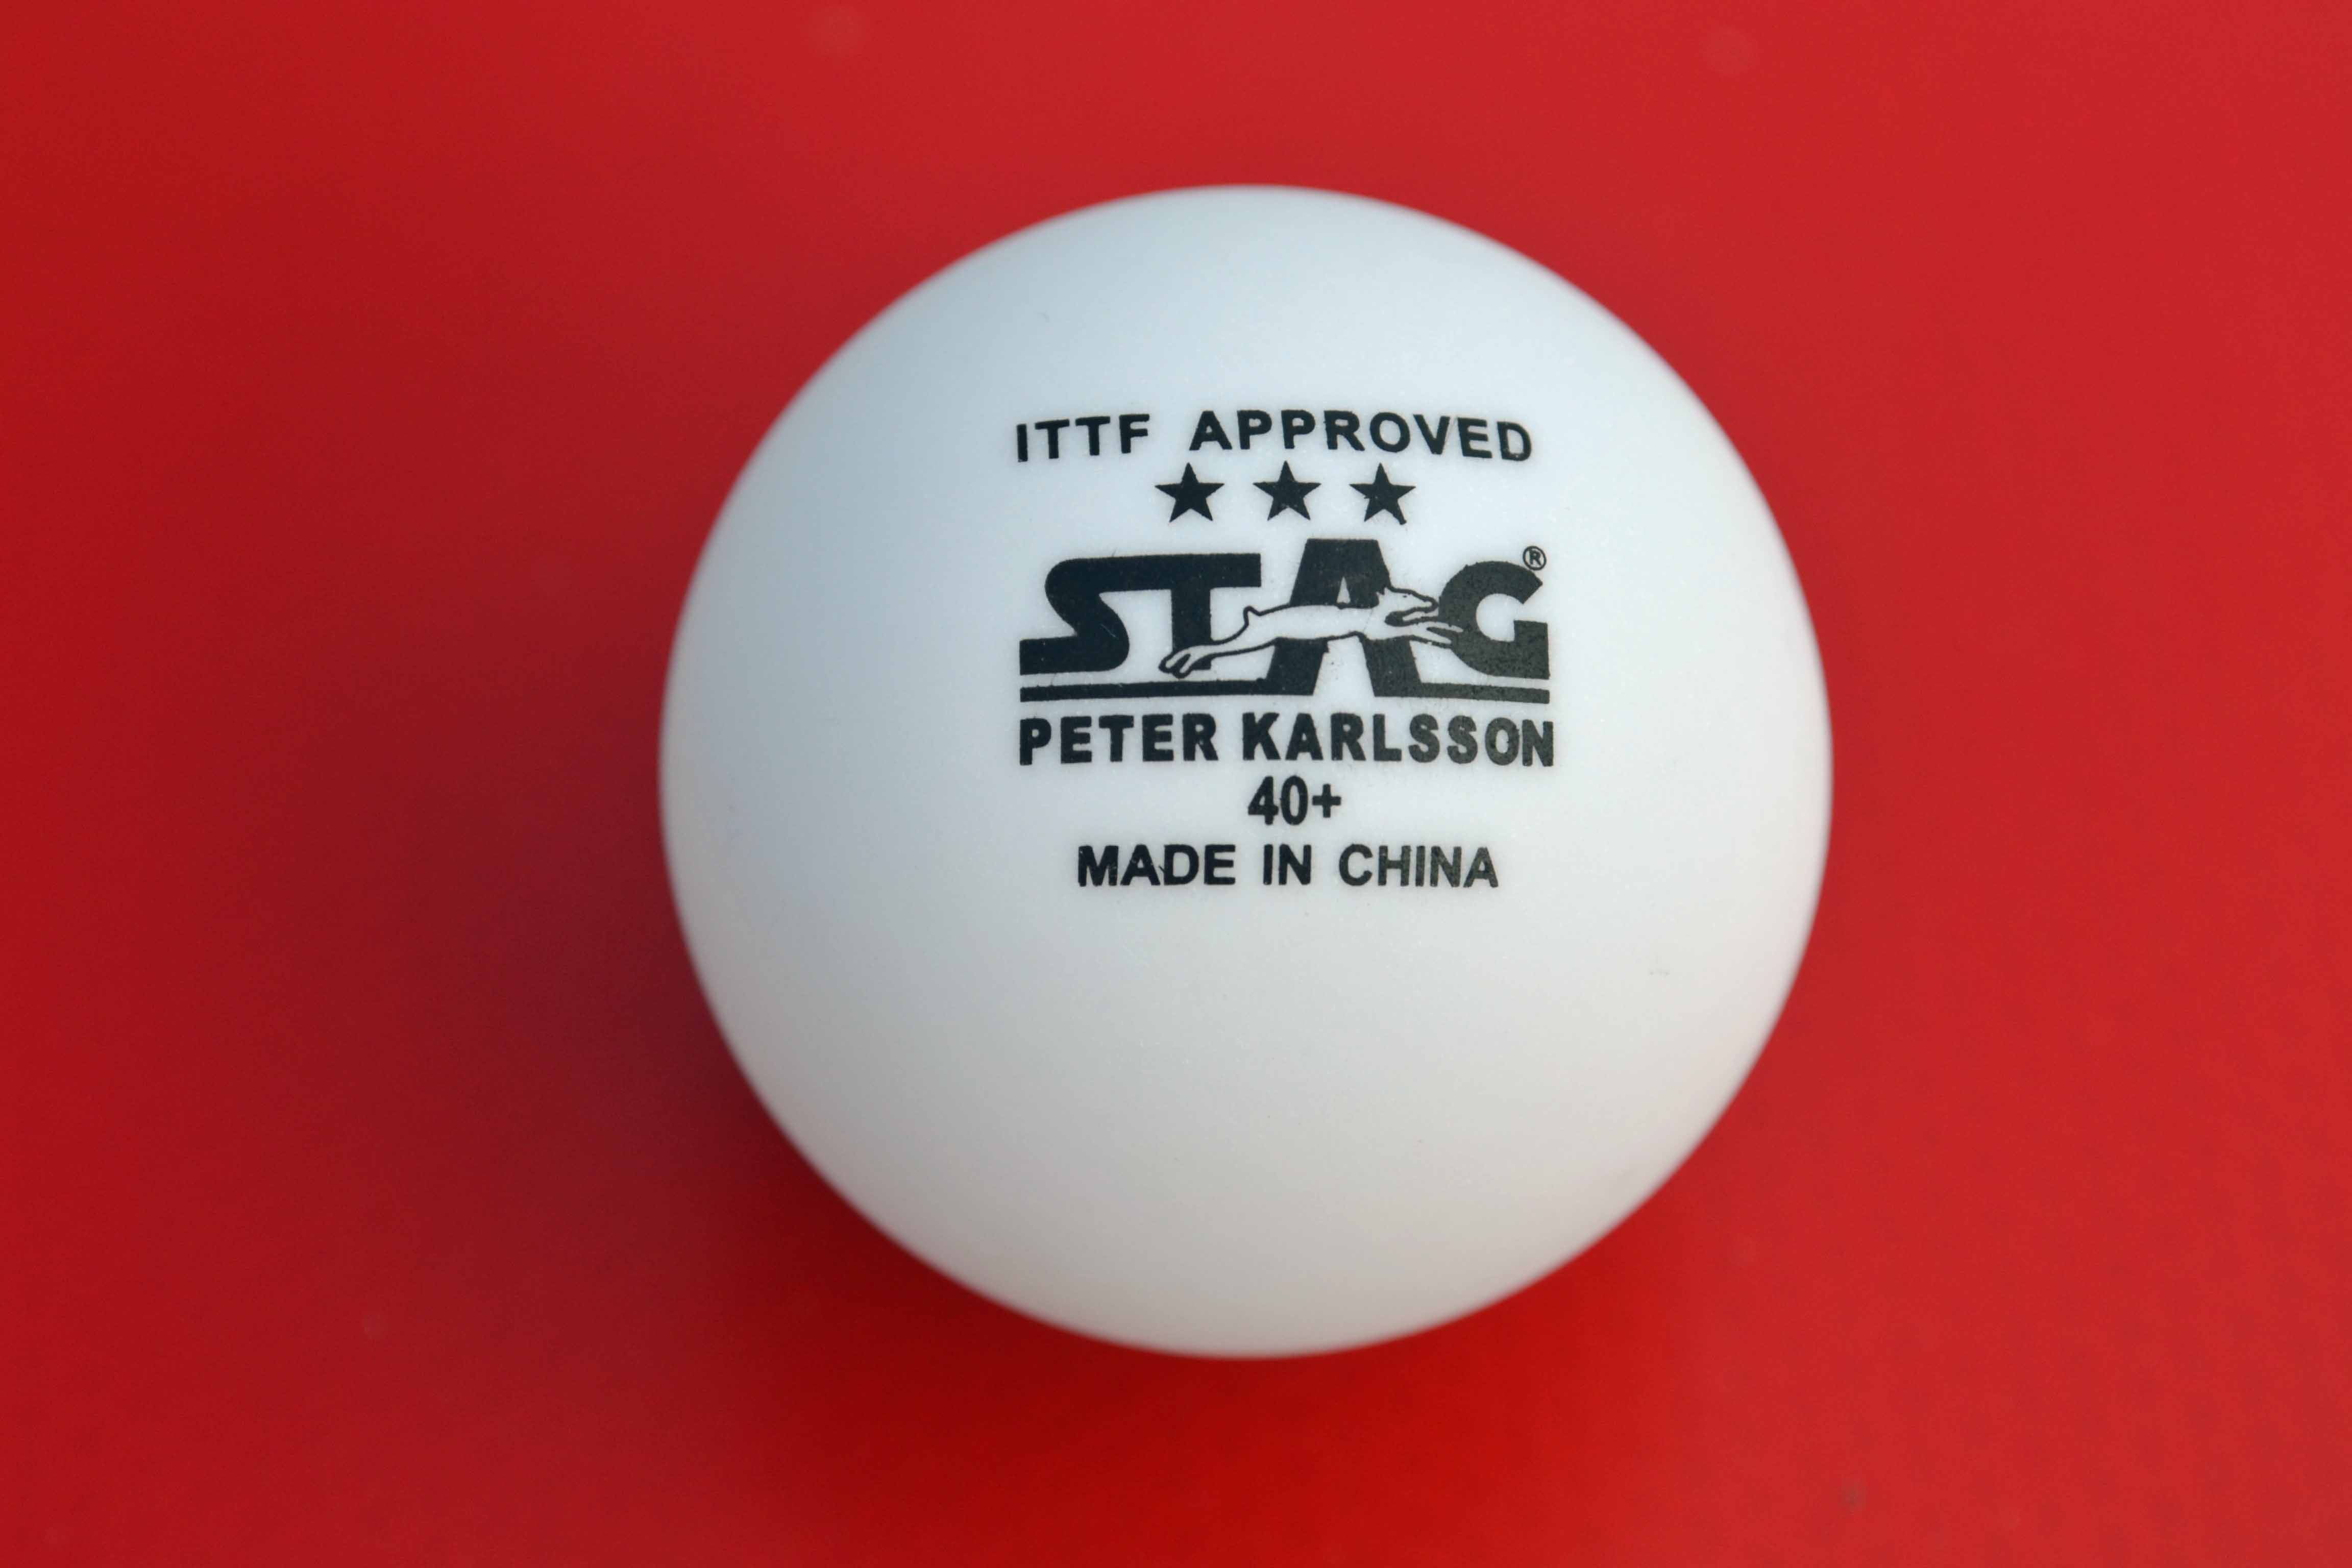 Stag Peter Karlsson 40+ 3-Star Table Tennis Ball Review